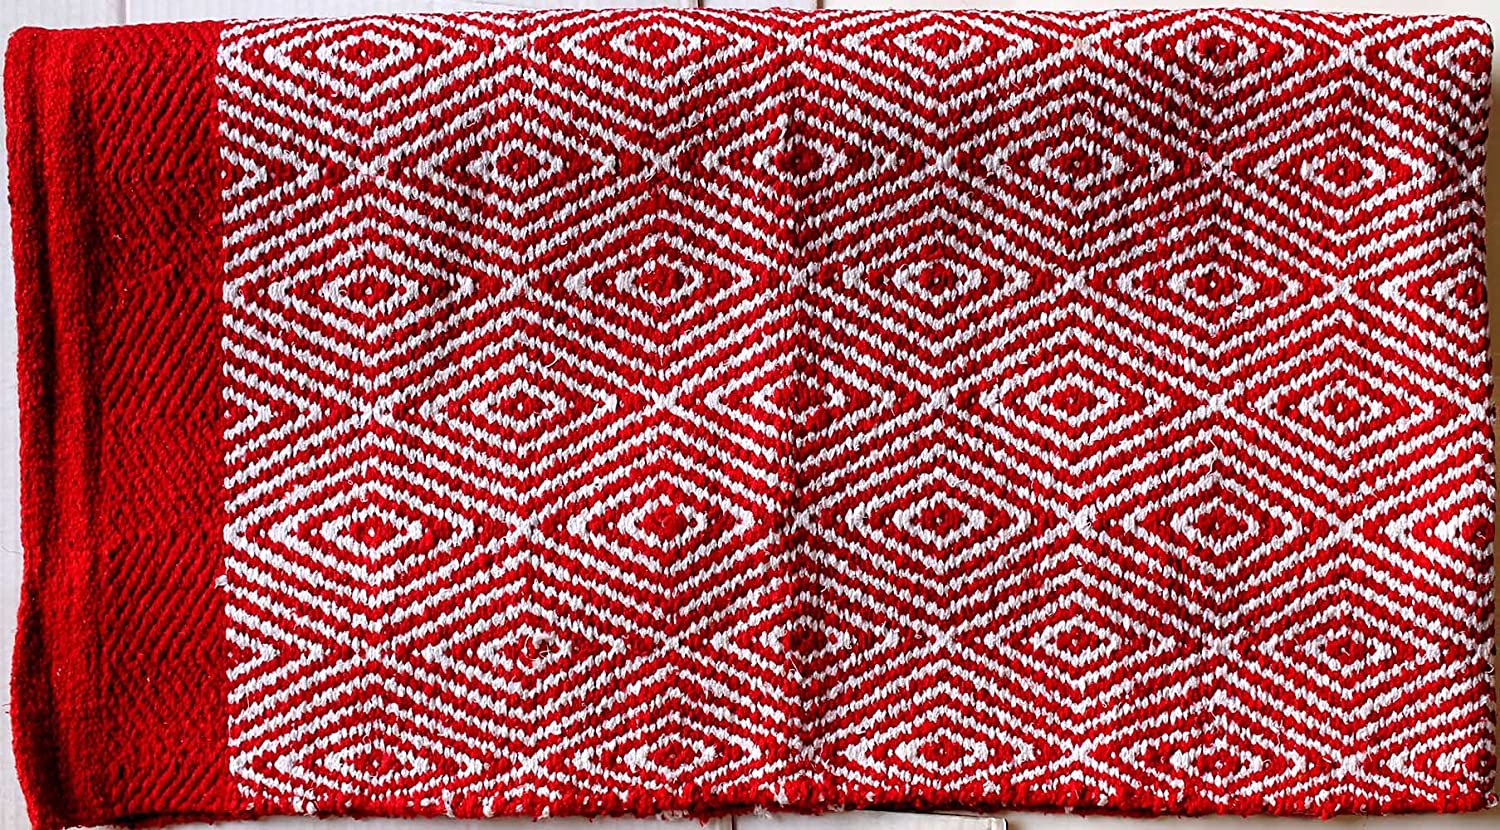 Cotton Blend Western Show Trail Horse SADDLE BLANKET Double Weave Red White 3725